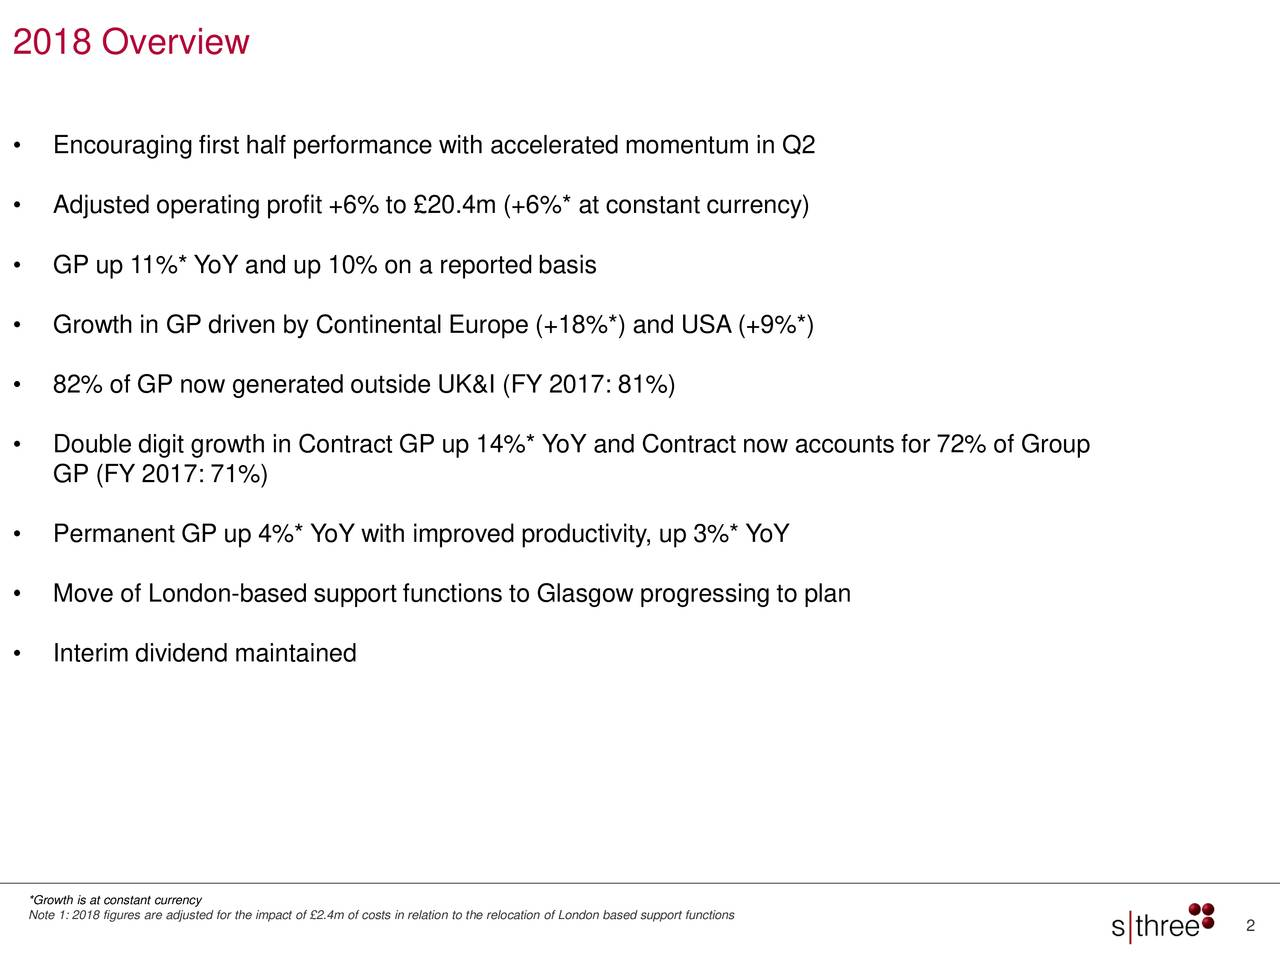 • Encouraging first half performance with accelerated momentum in Q2 • Adjusted operating profit +6% to £20.4m (+6%* at constant currency) • GP up 11%* YoY and up 10% on a reported basis • Growth in GP driven by Continental Europe (+18%*) and USA (+9%*) • 82% of GP now generated outside UK&I (FY 2017: 81%) • Double digit growth in Contract GP up 14%* YoY and Contract now accounts for 72% of Group GP (FY 2017: 71%) • Permanent GP up 4%* YoY with improved productivity, up 3%* YoY • Move of London-based support functions to Glasgow progressing to plan • Interim dividend maintained Note 1: 2018 figures are adjusted for the impact of £2.4m of costs in relation to the relocation of London based support functions 2